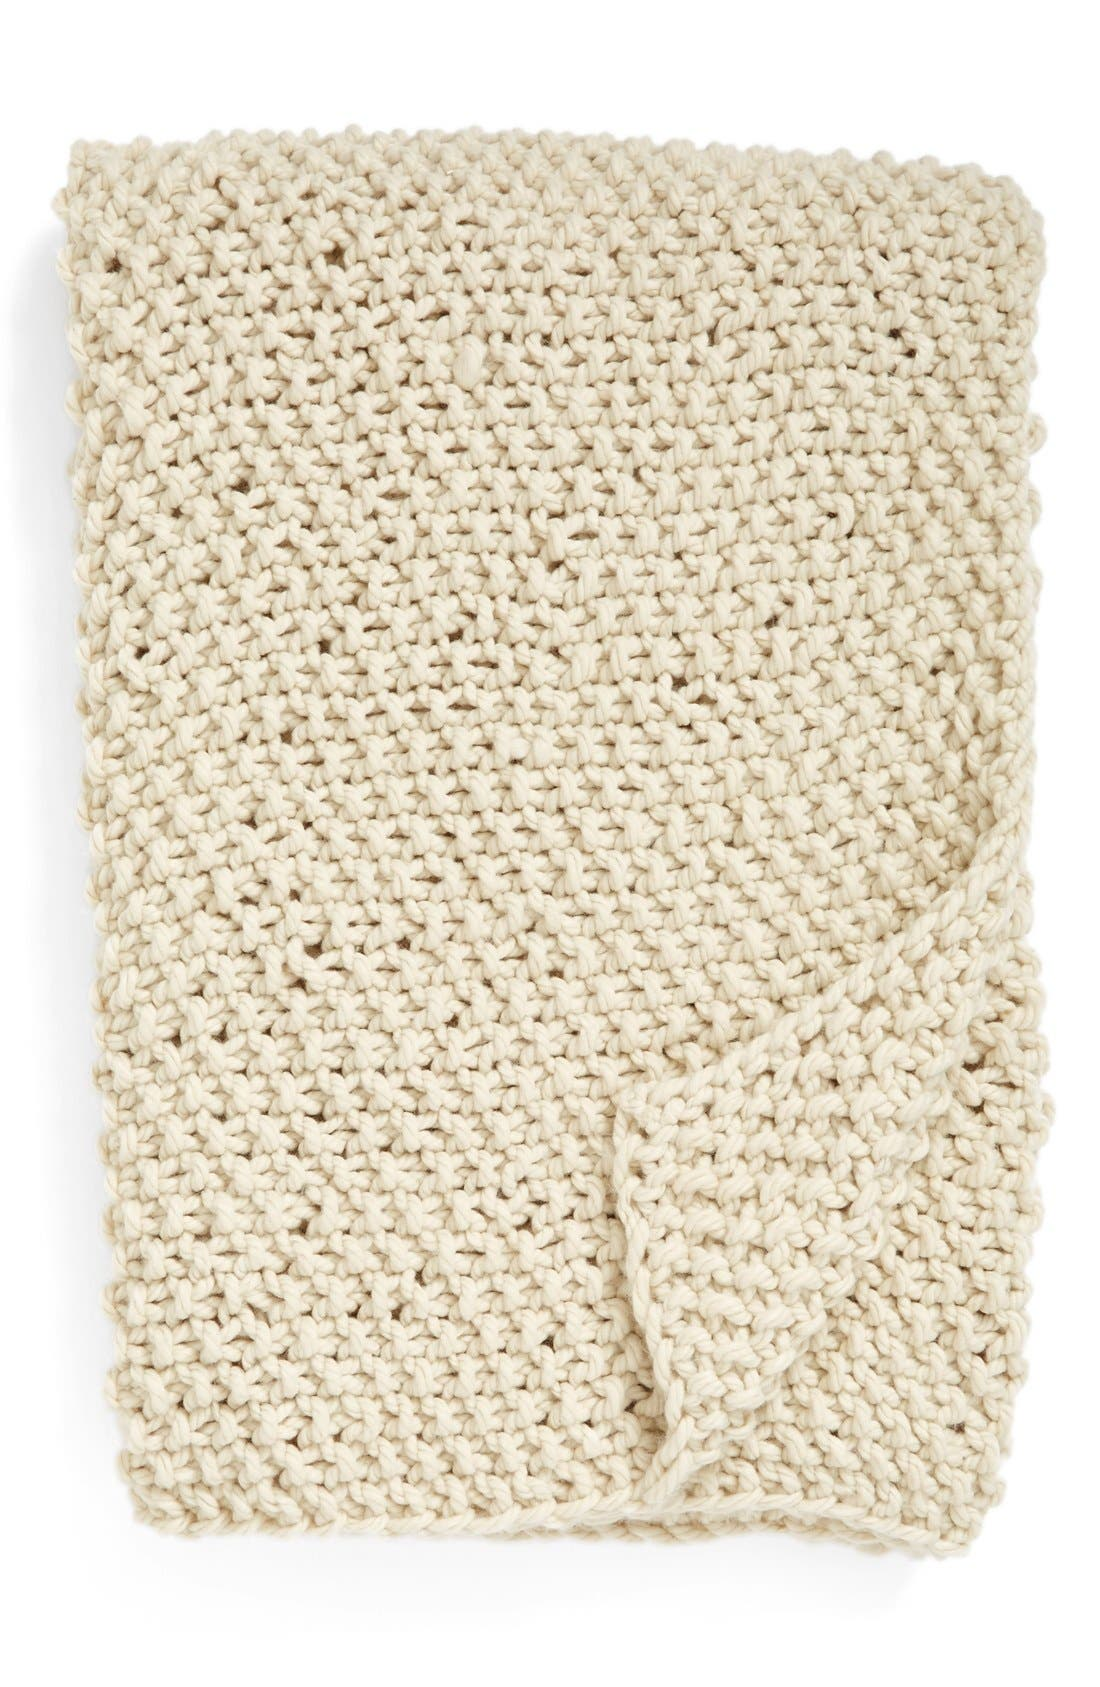 Nordstrom at Home Chunky Stitch Throw Blanket